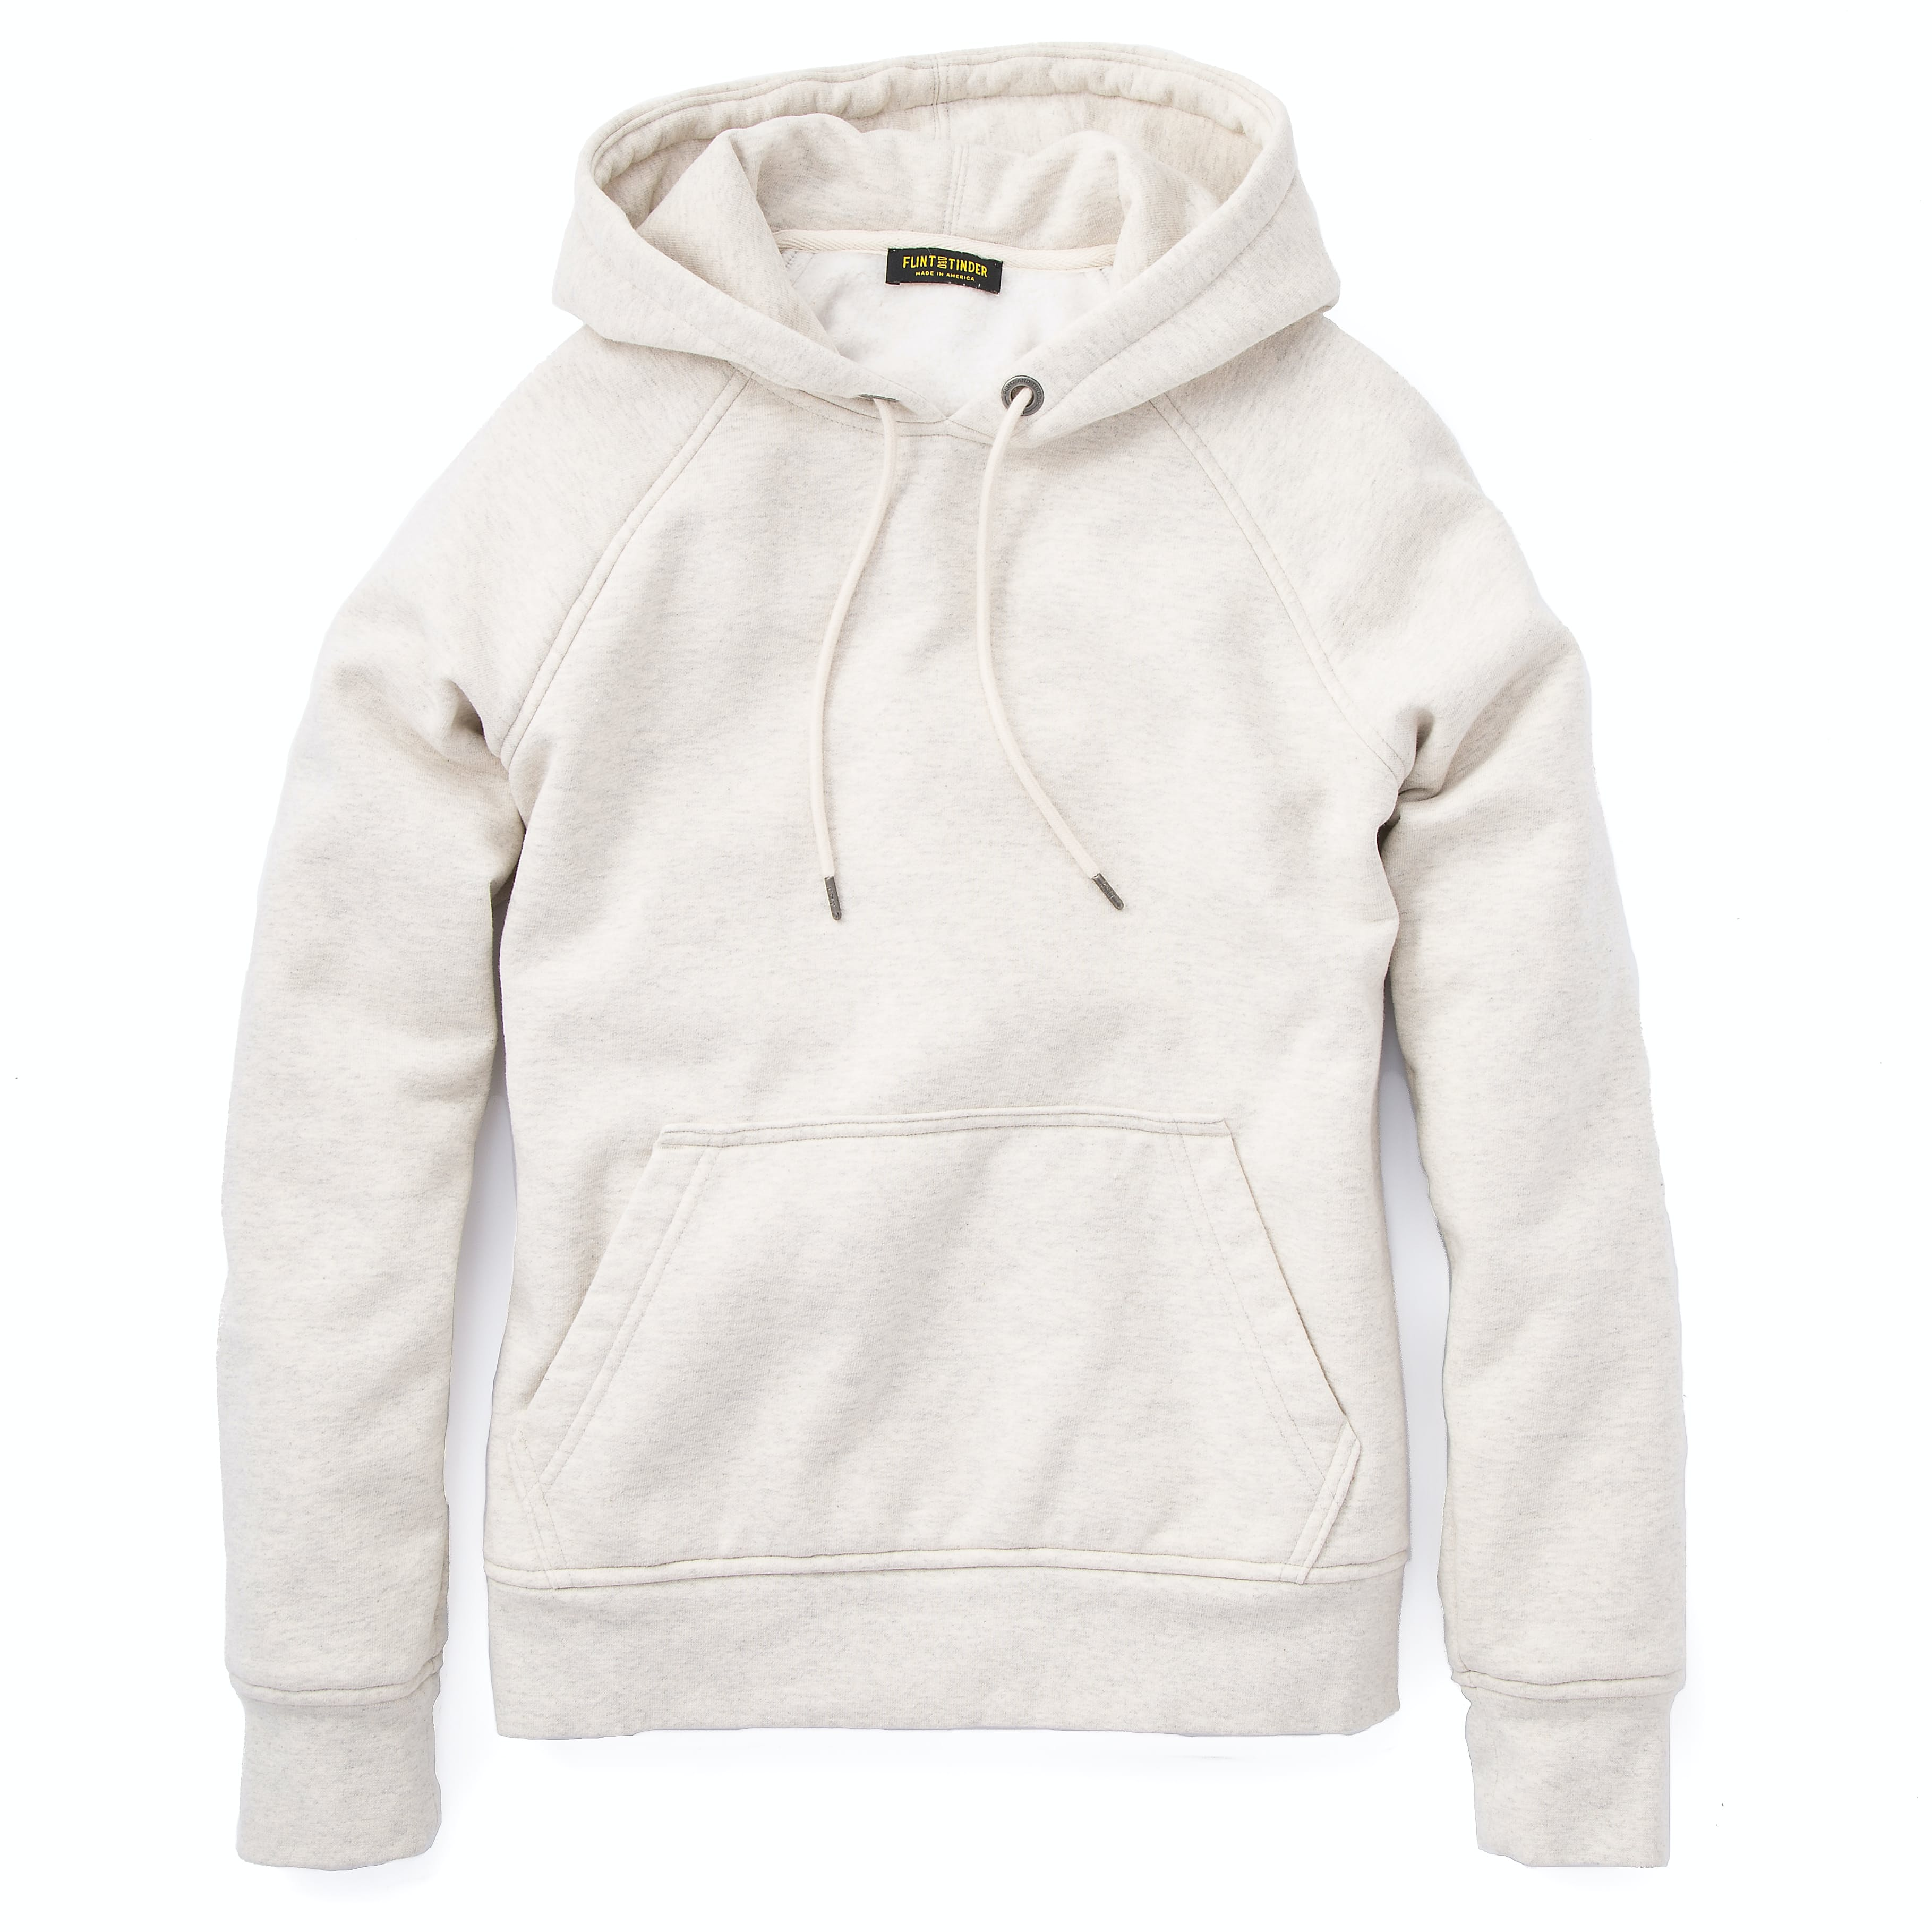 Bxfc5c6wc8 flint and tinder 10 year pullover 0 original